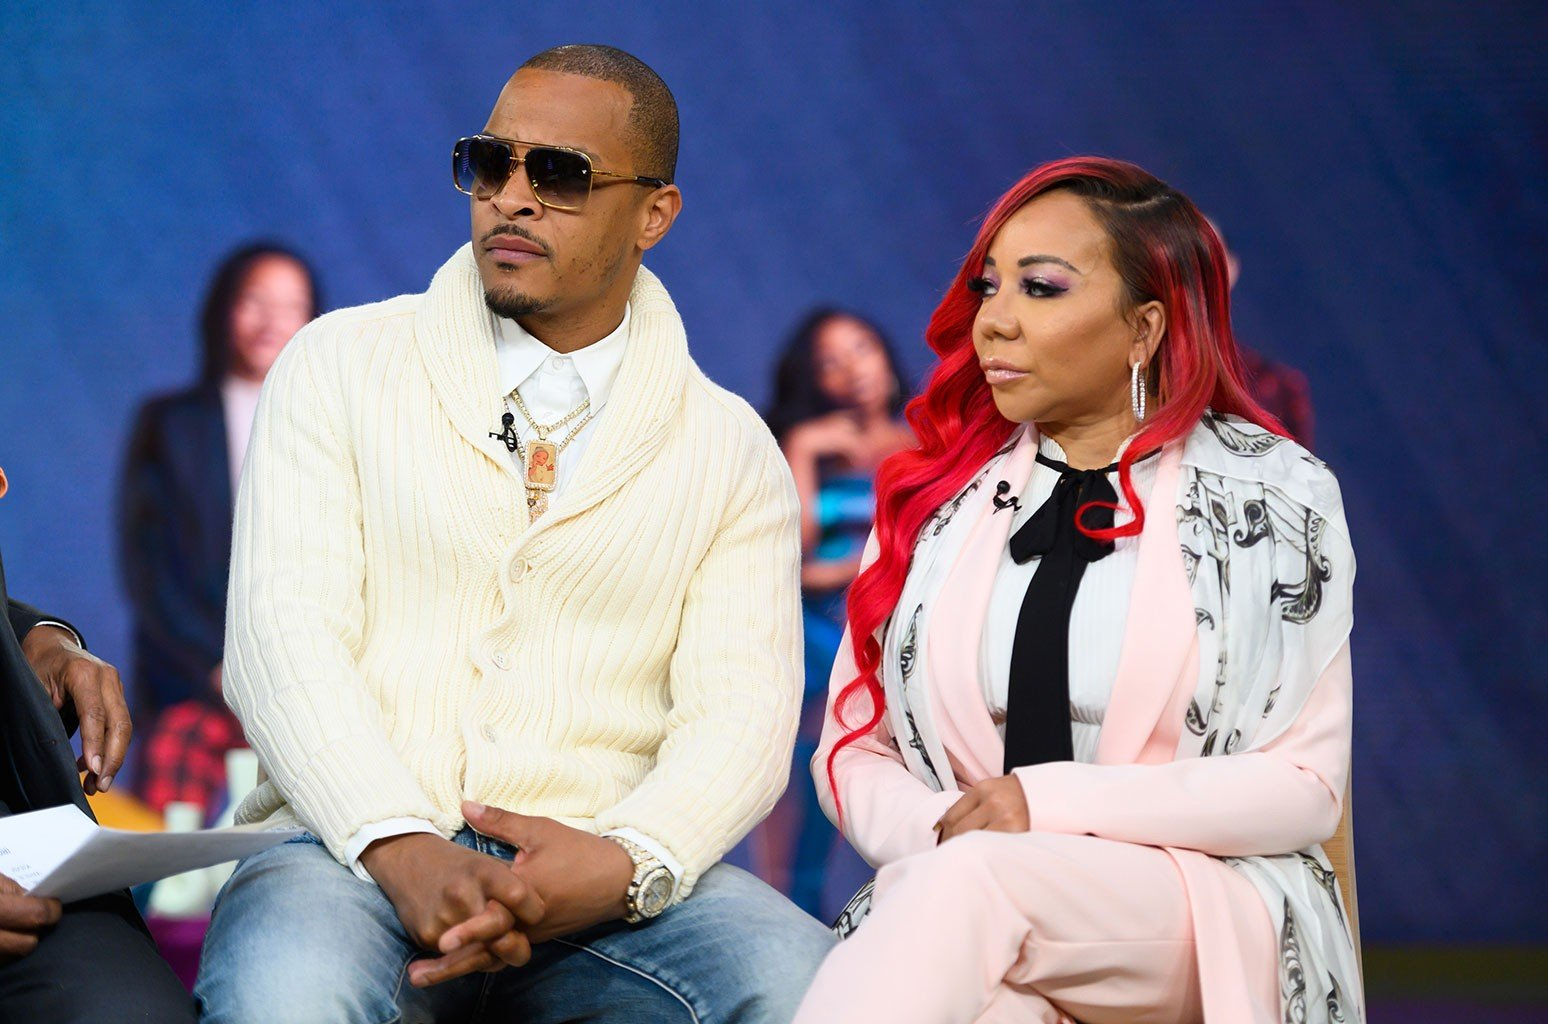 T.I And Tiny's VH1 Series Suspended — #Metoo Organization Gives Statement About Shocking Allegations Against The Couple!